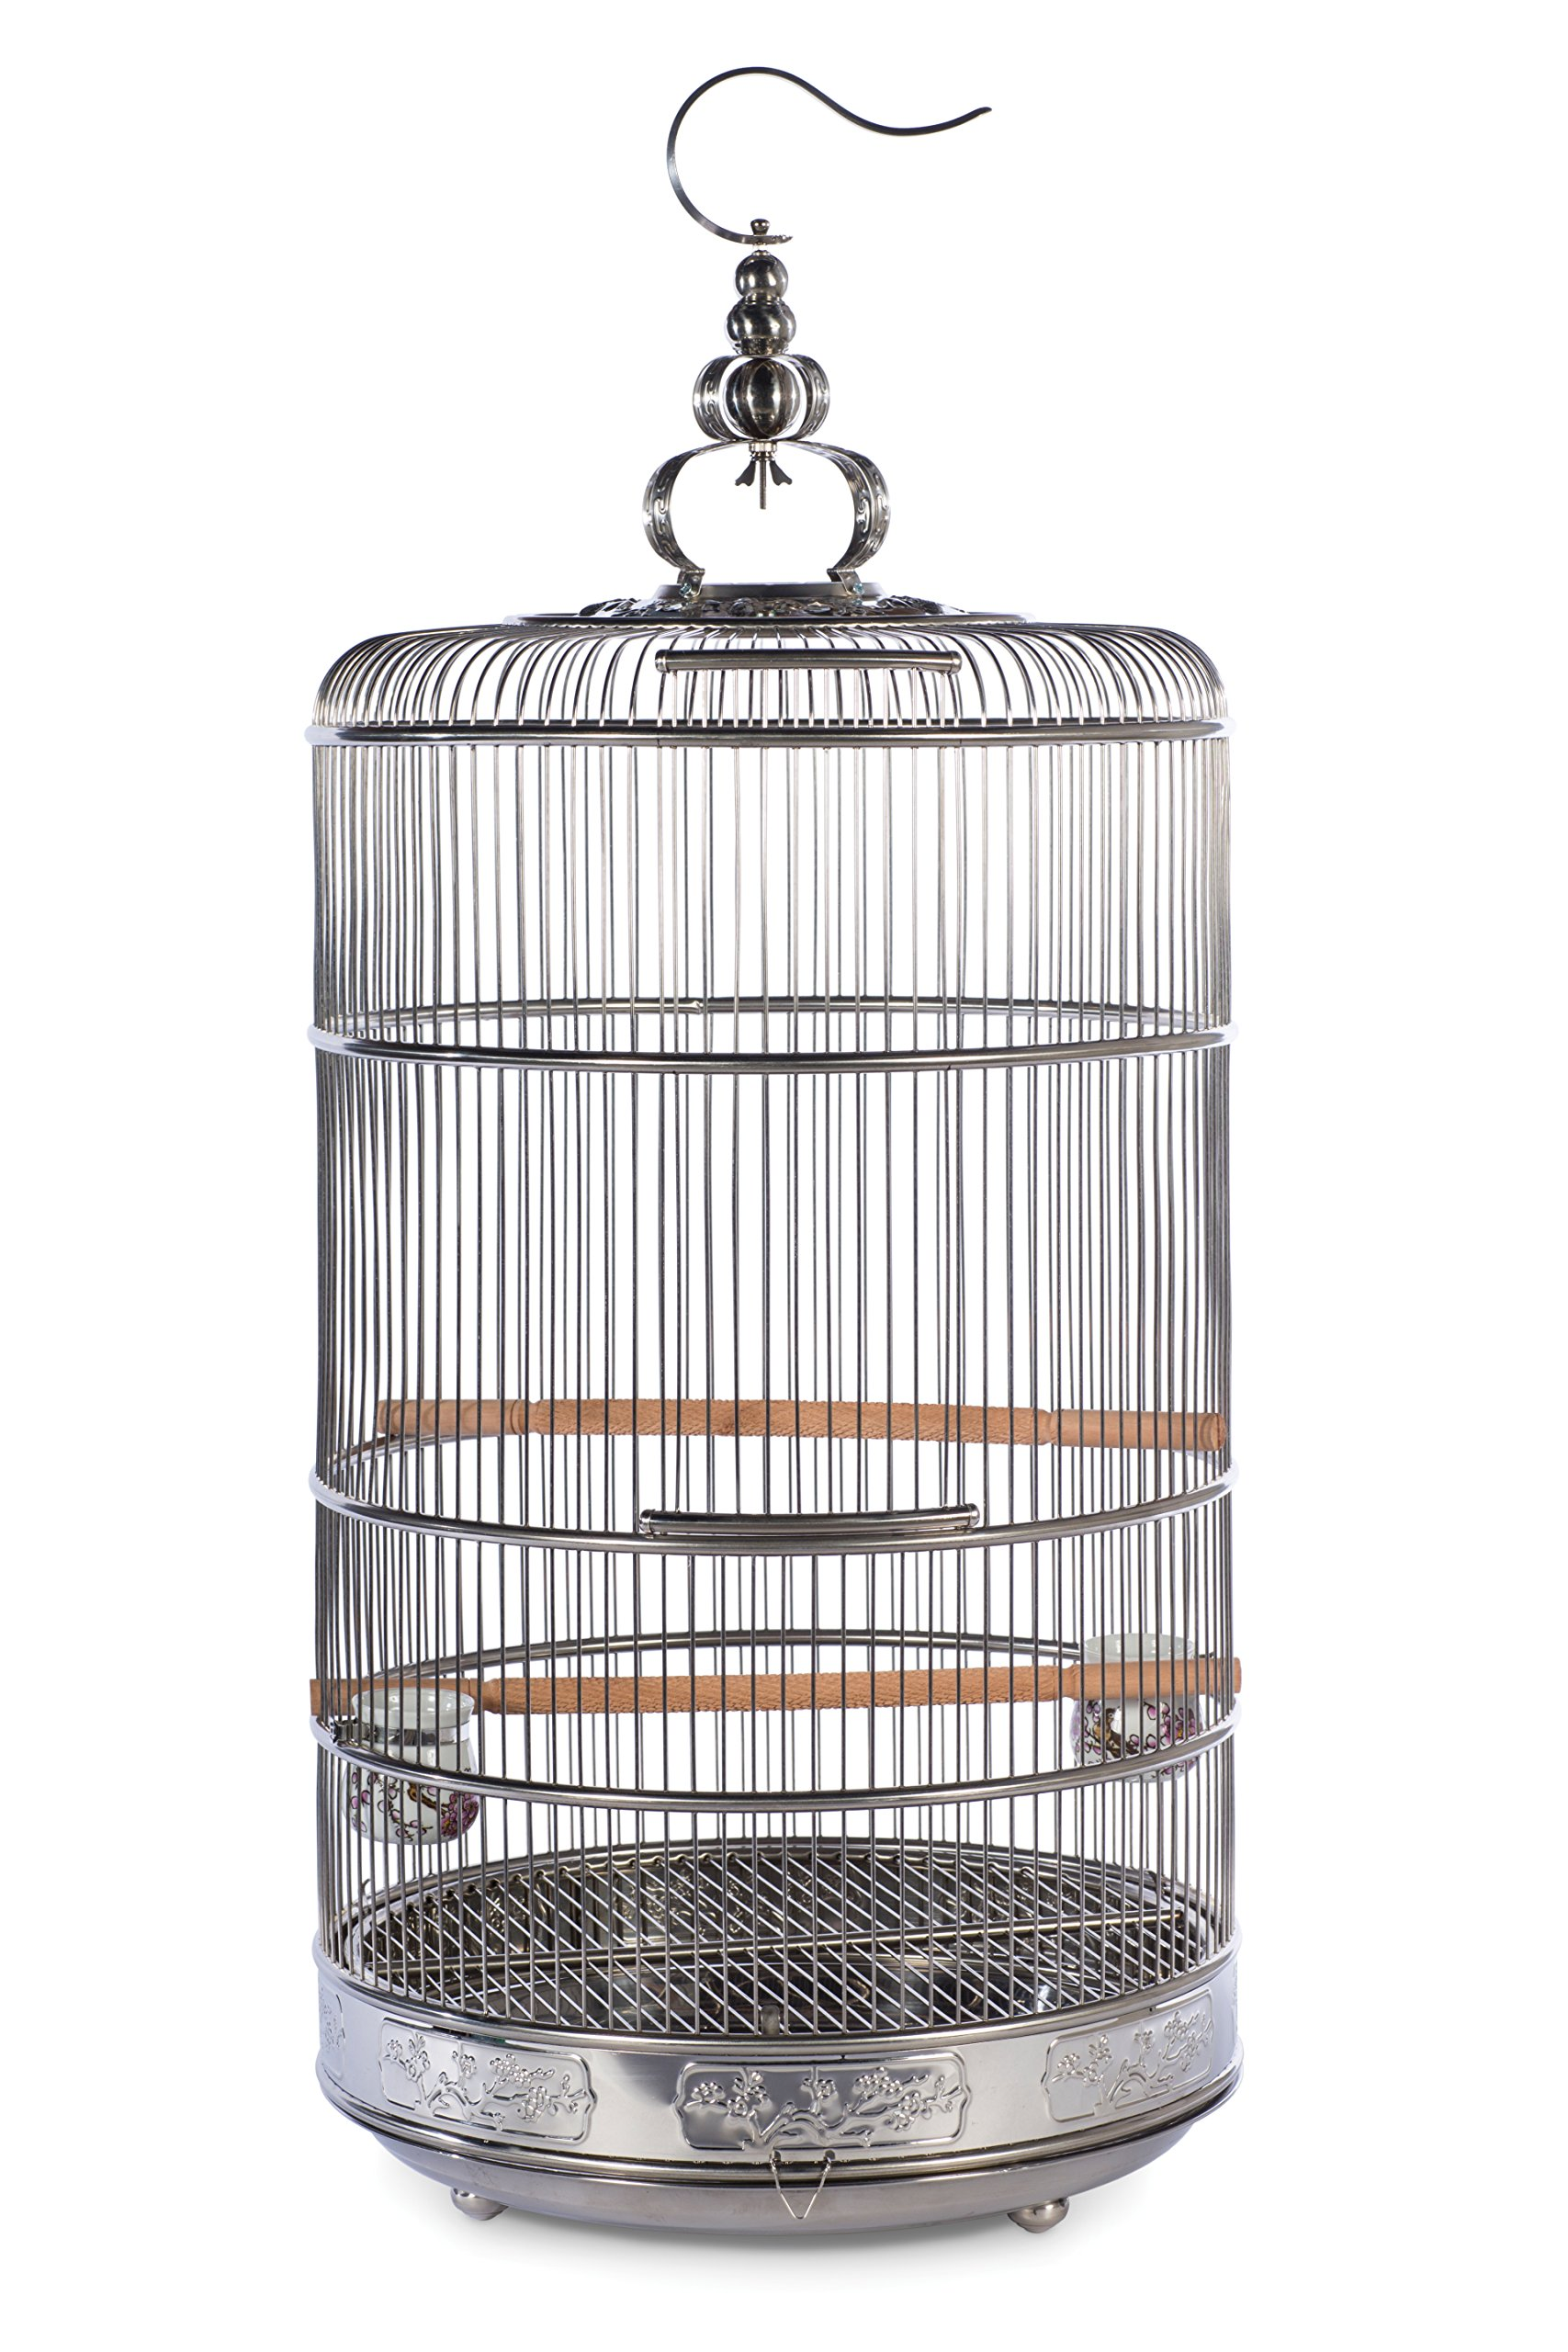 Prevue Pet Products Prevue Pet Products Dynasty Stainless Steel Bird Cage 152, Stainless Steel by Prevue Pet Products